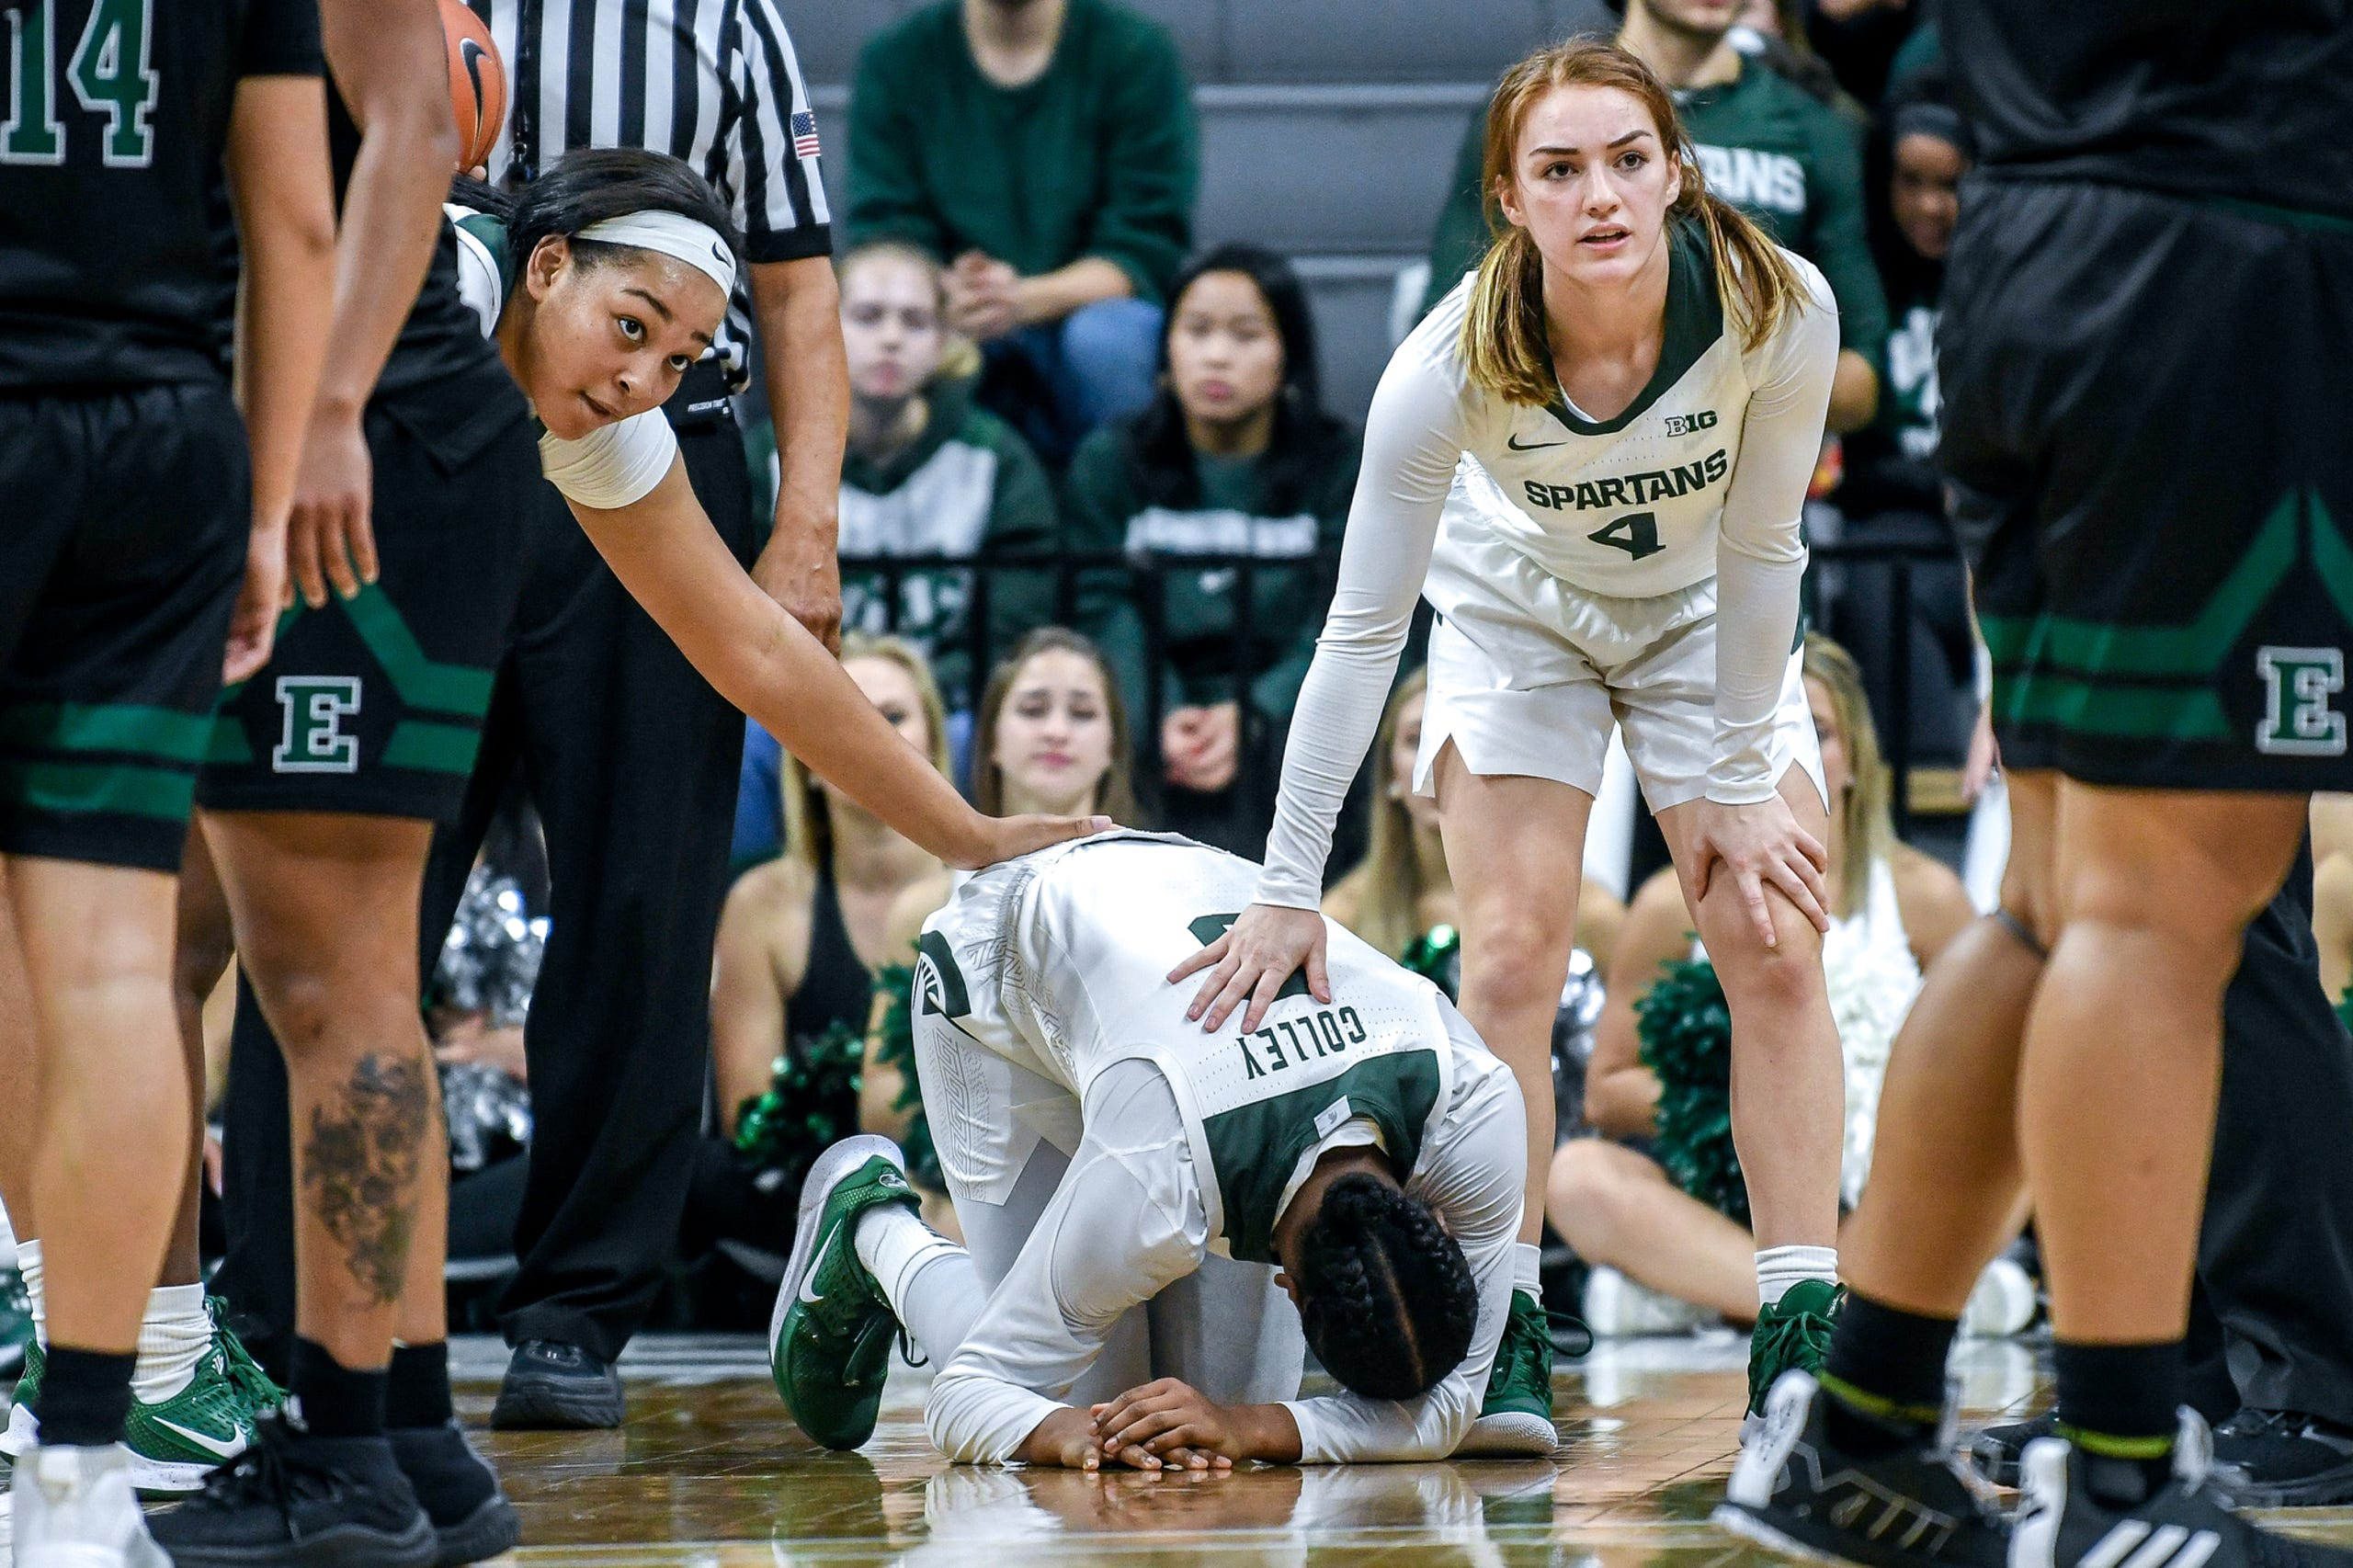 Michigan State's Taiyier Parks, left, and Taryn McCutcheon, right, comfort teammate Shay Colley, center, after Colley was injured during the fourth quarter on Tuesday, Nov. 5, 2019, at the Breslin Center in East Lansing.